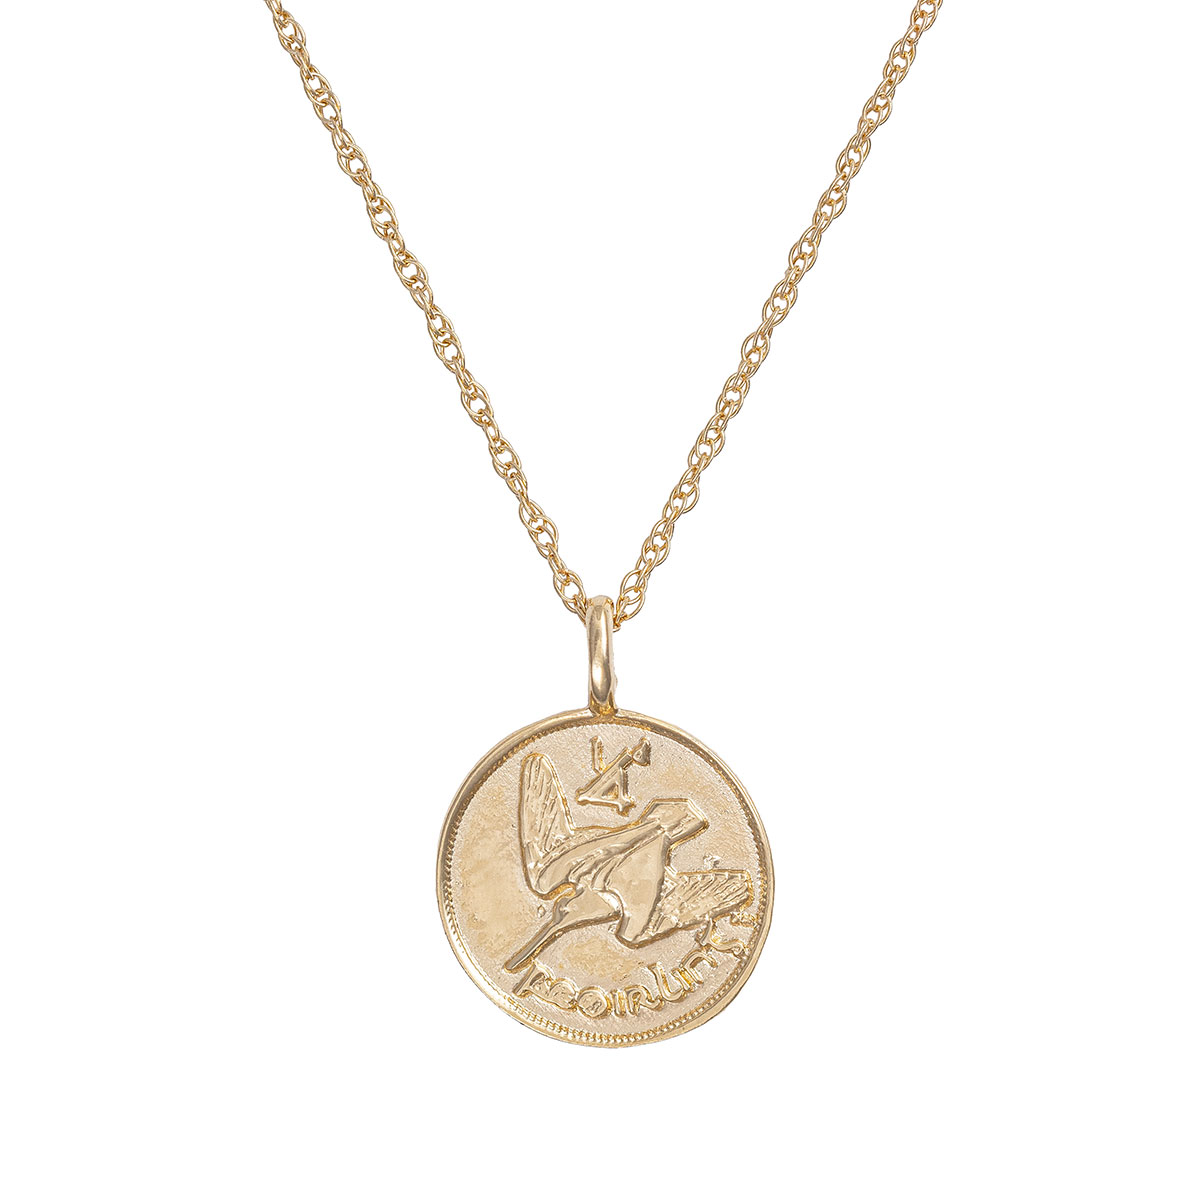 Chupi-Solid-Gold-Worth-Your-Weight-in-Gold-1930-Farthing-Coin-Necklace-1